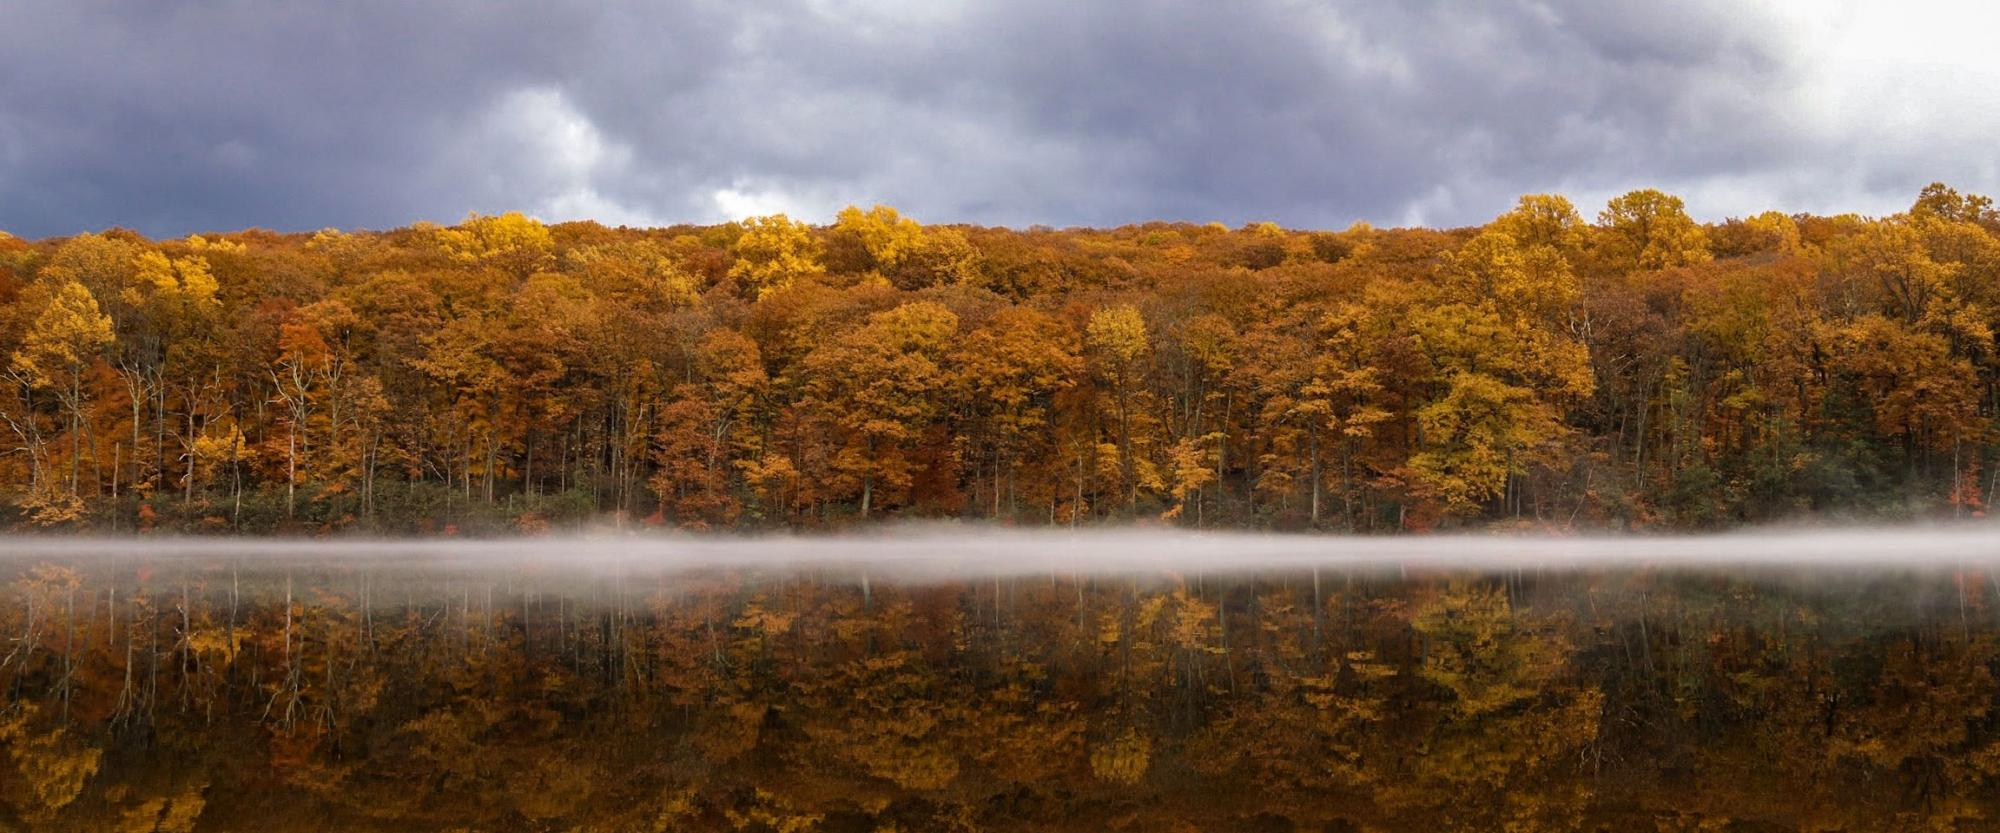 Harriman Lake Reflection. Photo by Diana Richards.